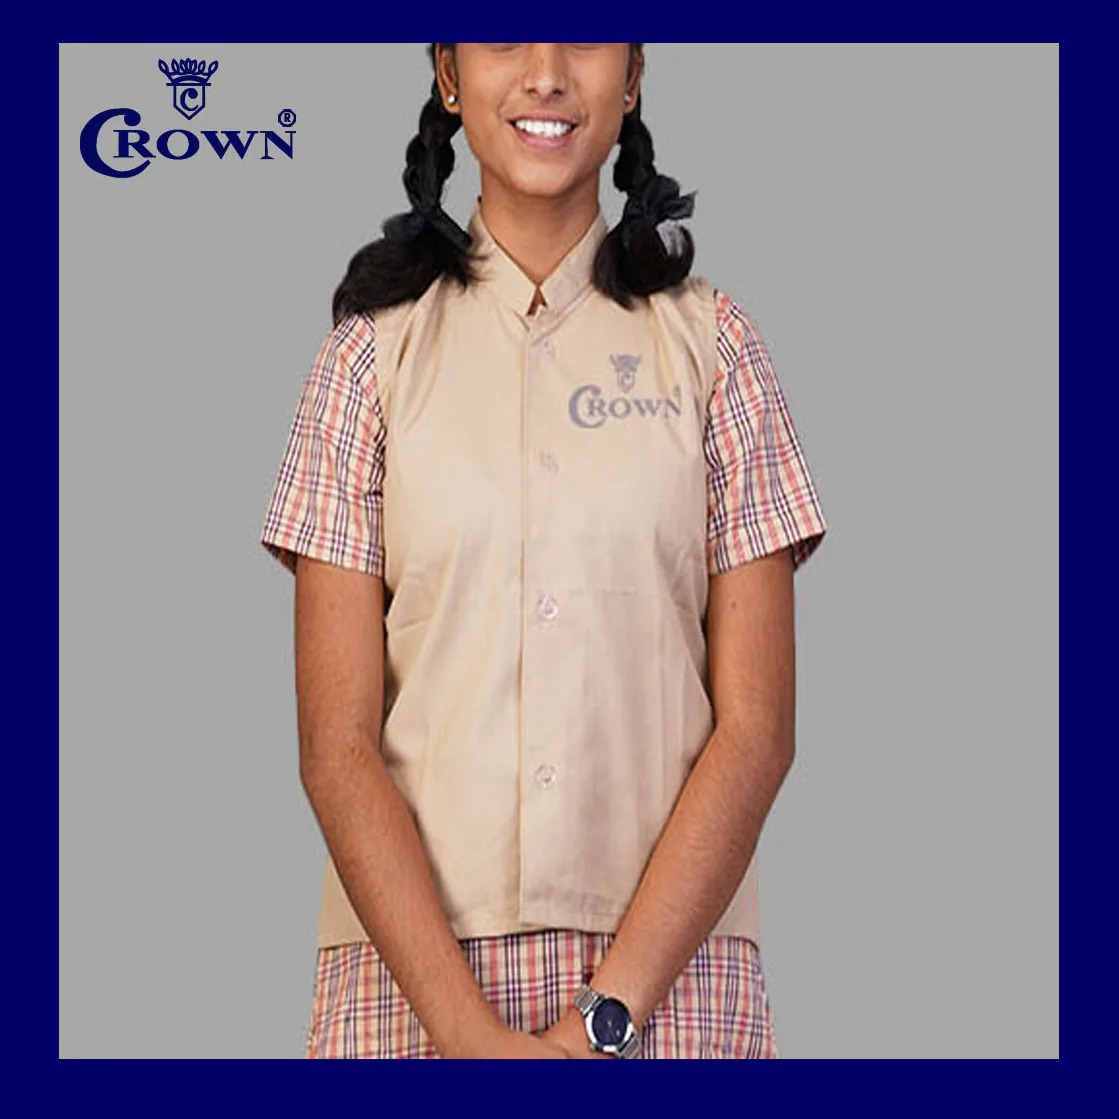 Crown TN Govt 6 - 8th Std Fawn Coat (14-15years)